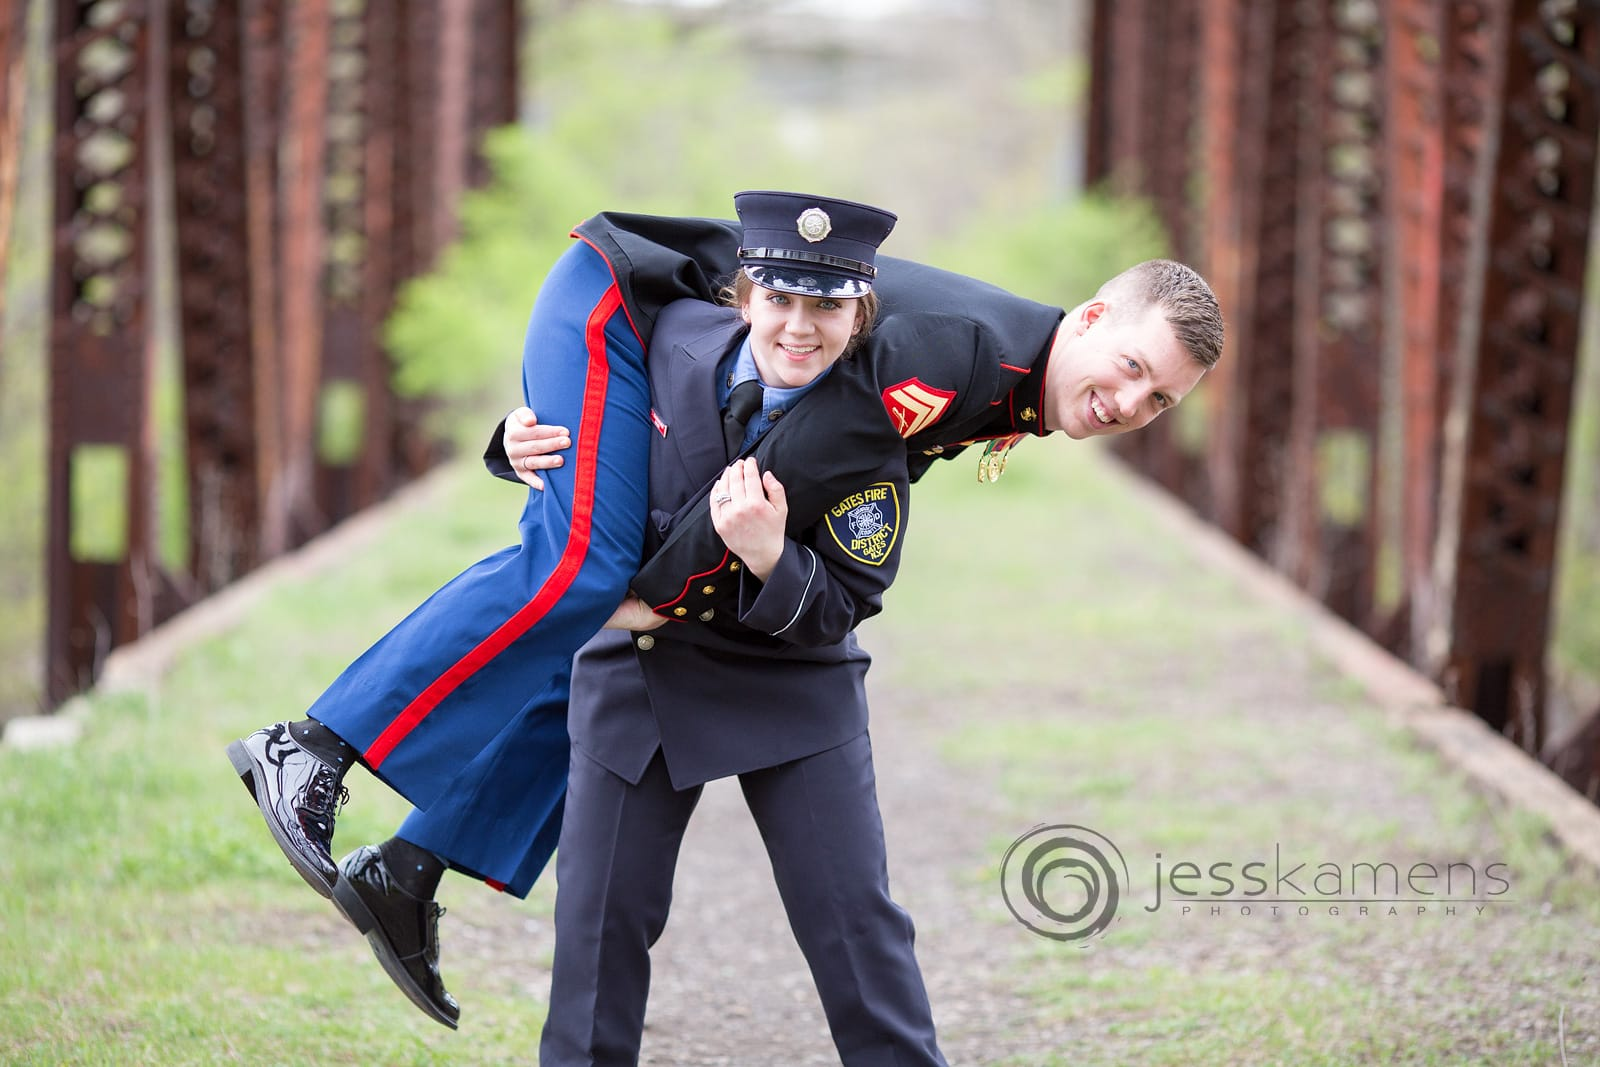 wedding photographers in rochester ny love to use unique bridges and such to capture images like this firefighter holding her marine fiance on her back for their engagement photos